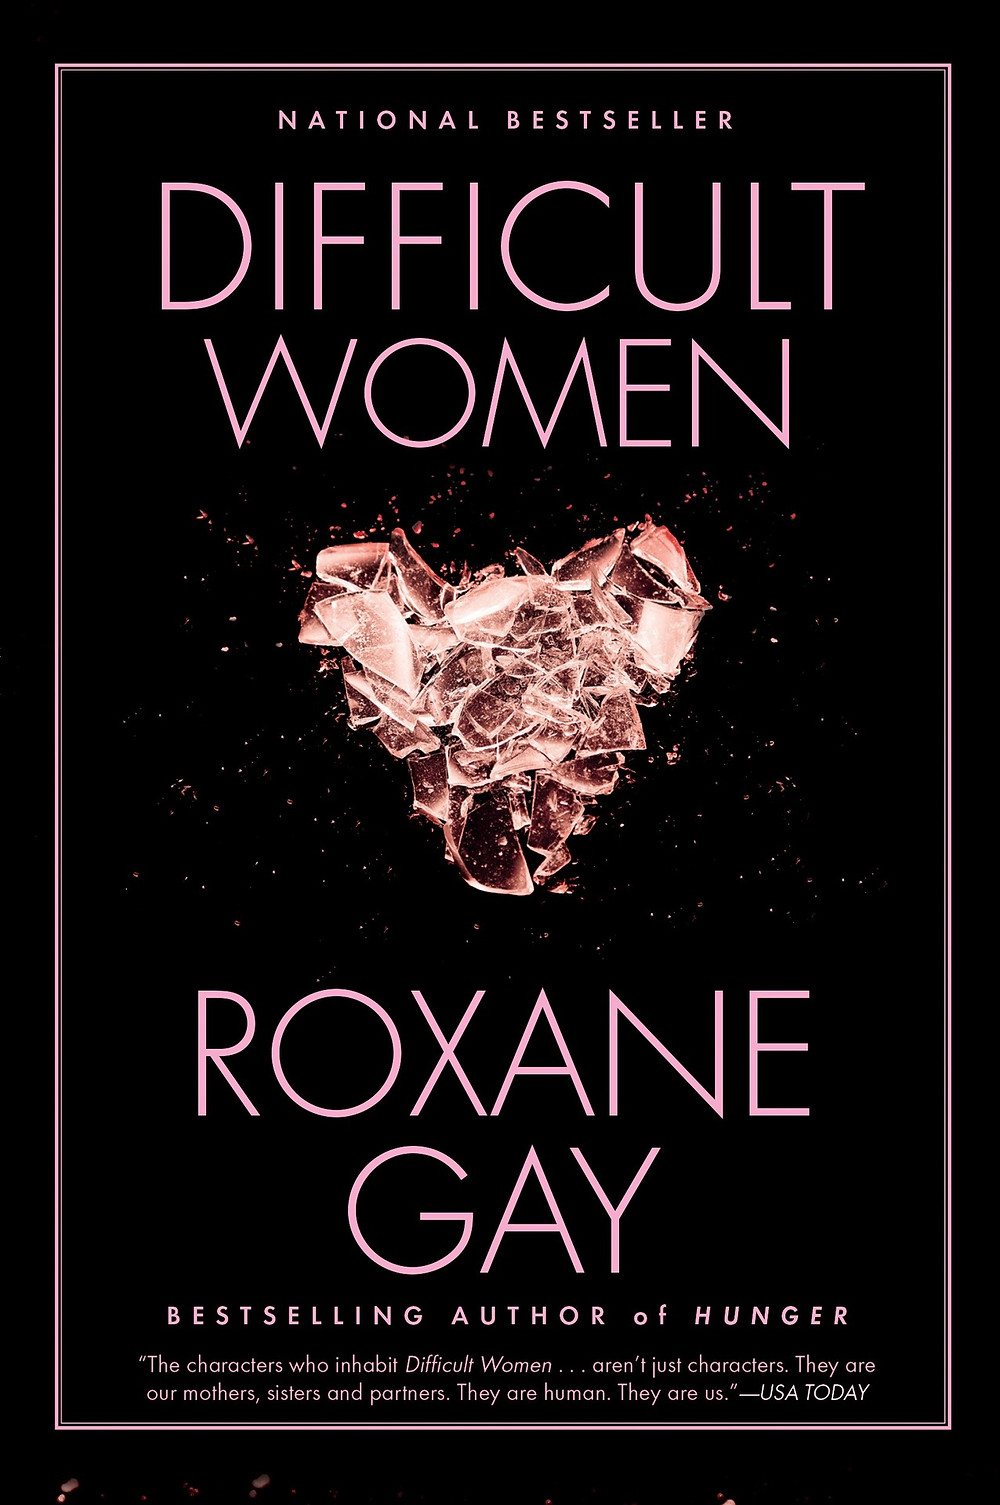 Difficult Women Roxane Gay Award-winning author and powerhouse talent Roxane Gay burst onto the scene with An Untamed State and the New York Times bestselling essay collection Bad Feminist (Harper Perennial). Gay returns with Difficult Women, a collection of stories of rare force and beauty, of hardscrabble lives, passionate loves, and quirky and vexed human connection. The women in these stories live lives of privilege and of poverty, are in marriages both loving and haunted by past crimes or emotional blackmail. A pair of sisters, grown now, have been inseparable ever since they were abducted together as children, and must negotiate the elder sister's marriage. A woman married to a twin pretends not to realize when her husband and his brother impersonate each other. A stripper putting herself through college fends off the advances of an overzealous customer. A black engineer moves to Upper Michigan for a job and faces the malign curiosity of her colleagues and the difficulty of leaving her past behind. From a girls' fight club to a wealthy subdivision in Florida where neighbors conform, compete, and spy on each other, Gay delivers a wry, beautiful, haunting vision of modern America reminiscent of Merritt Tierce, Jamie Quatro, and Miranda July.